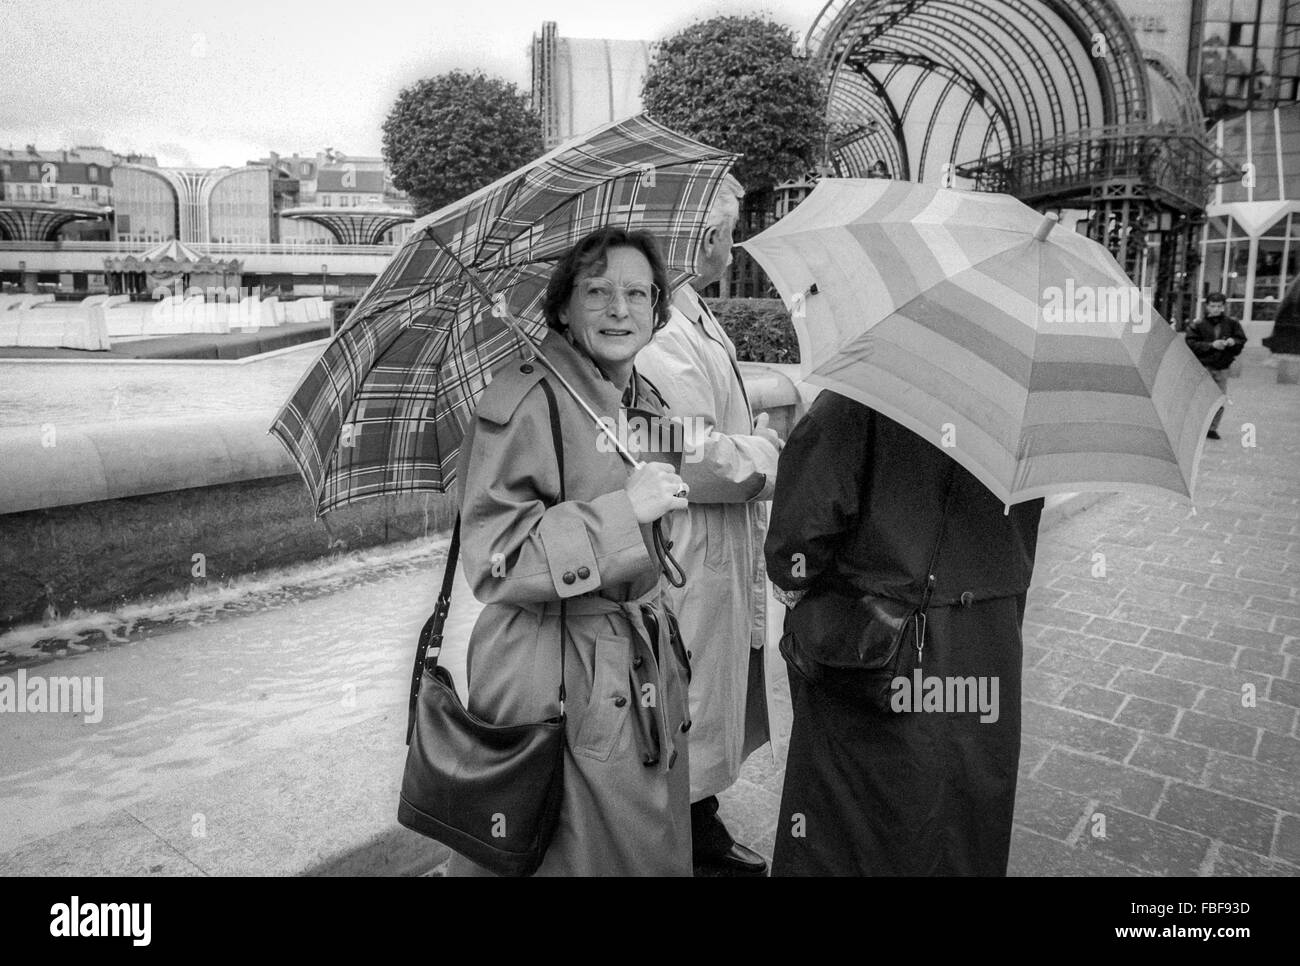 Ladies with umbrellas on the streets of paris in 1990s stock image